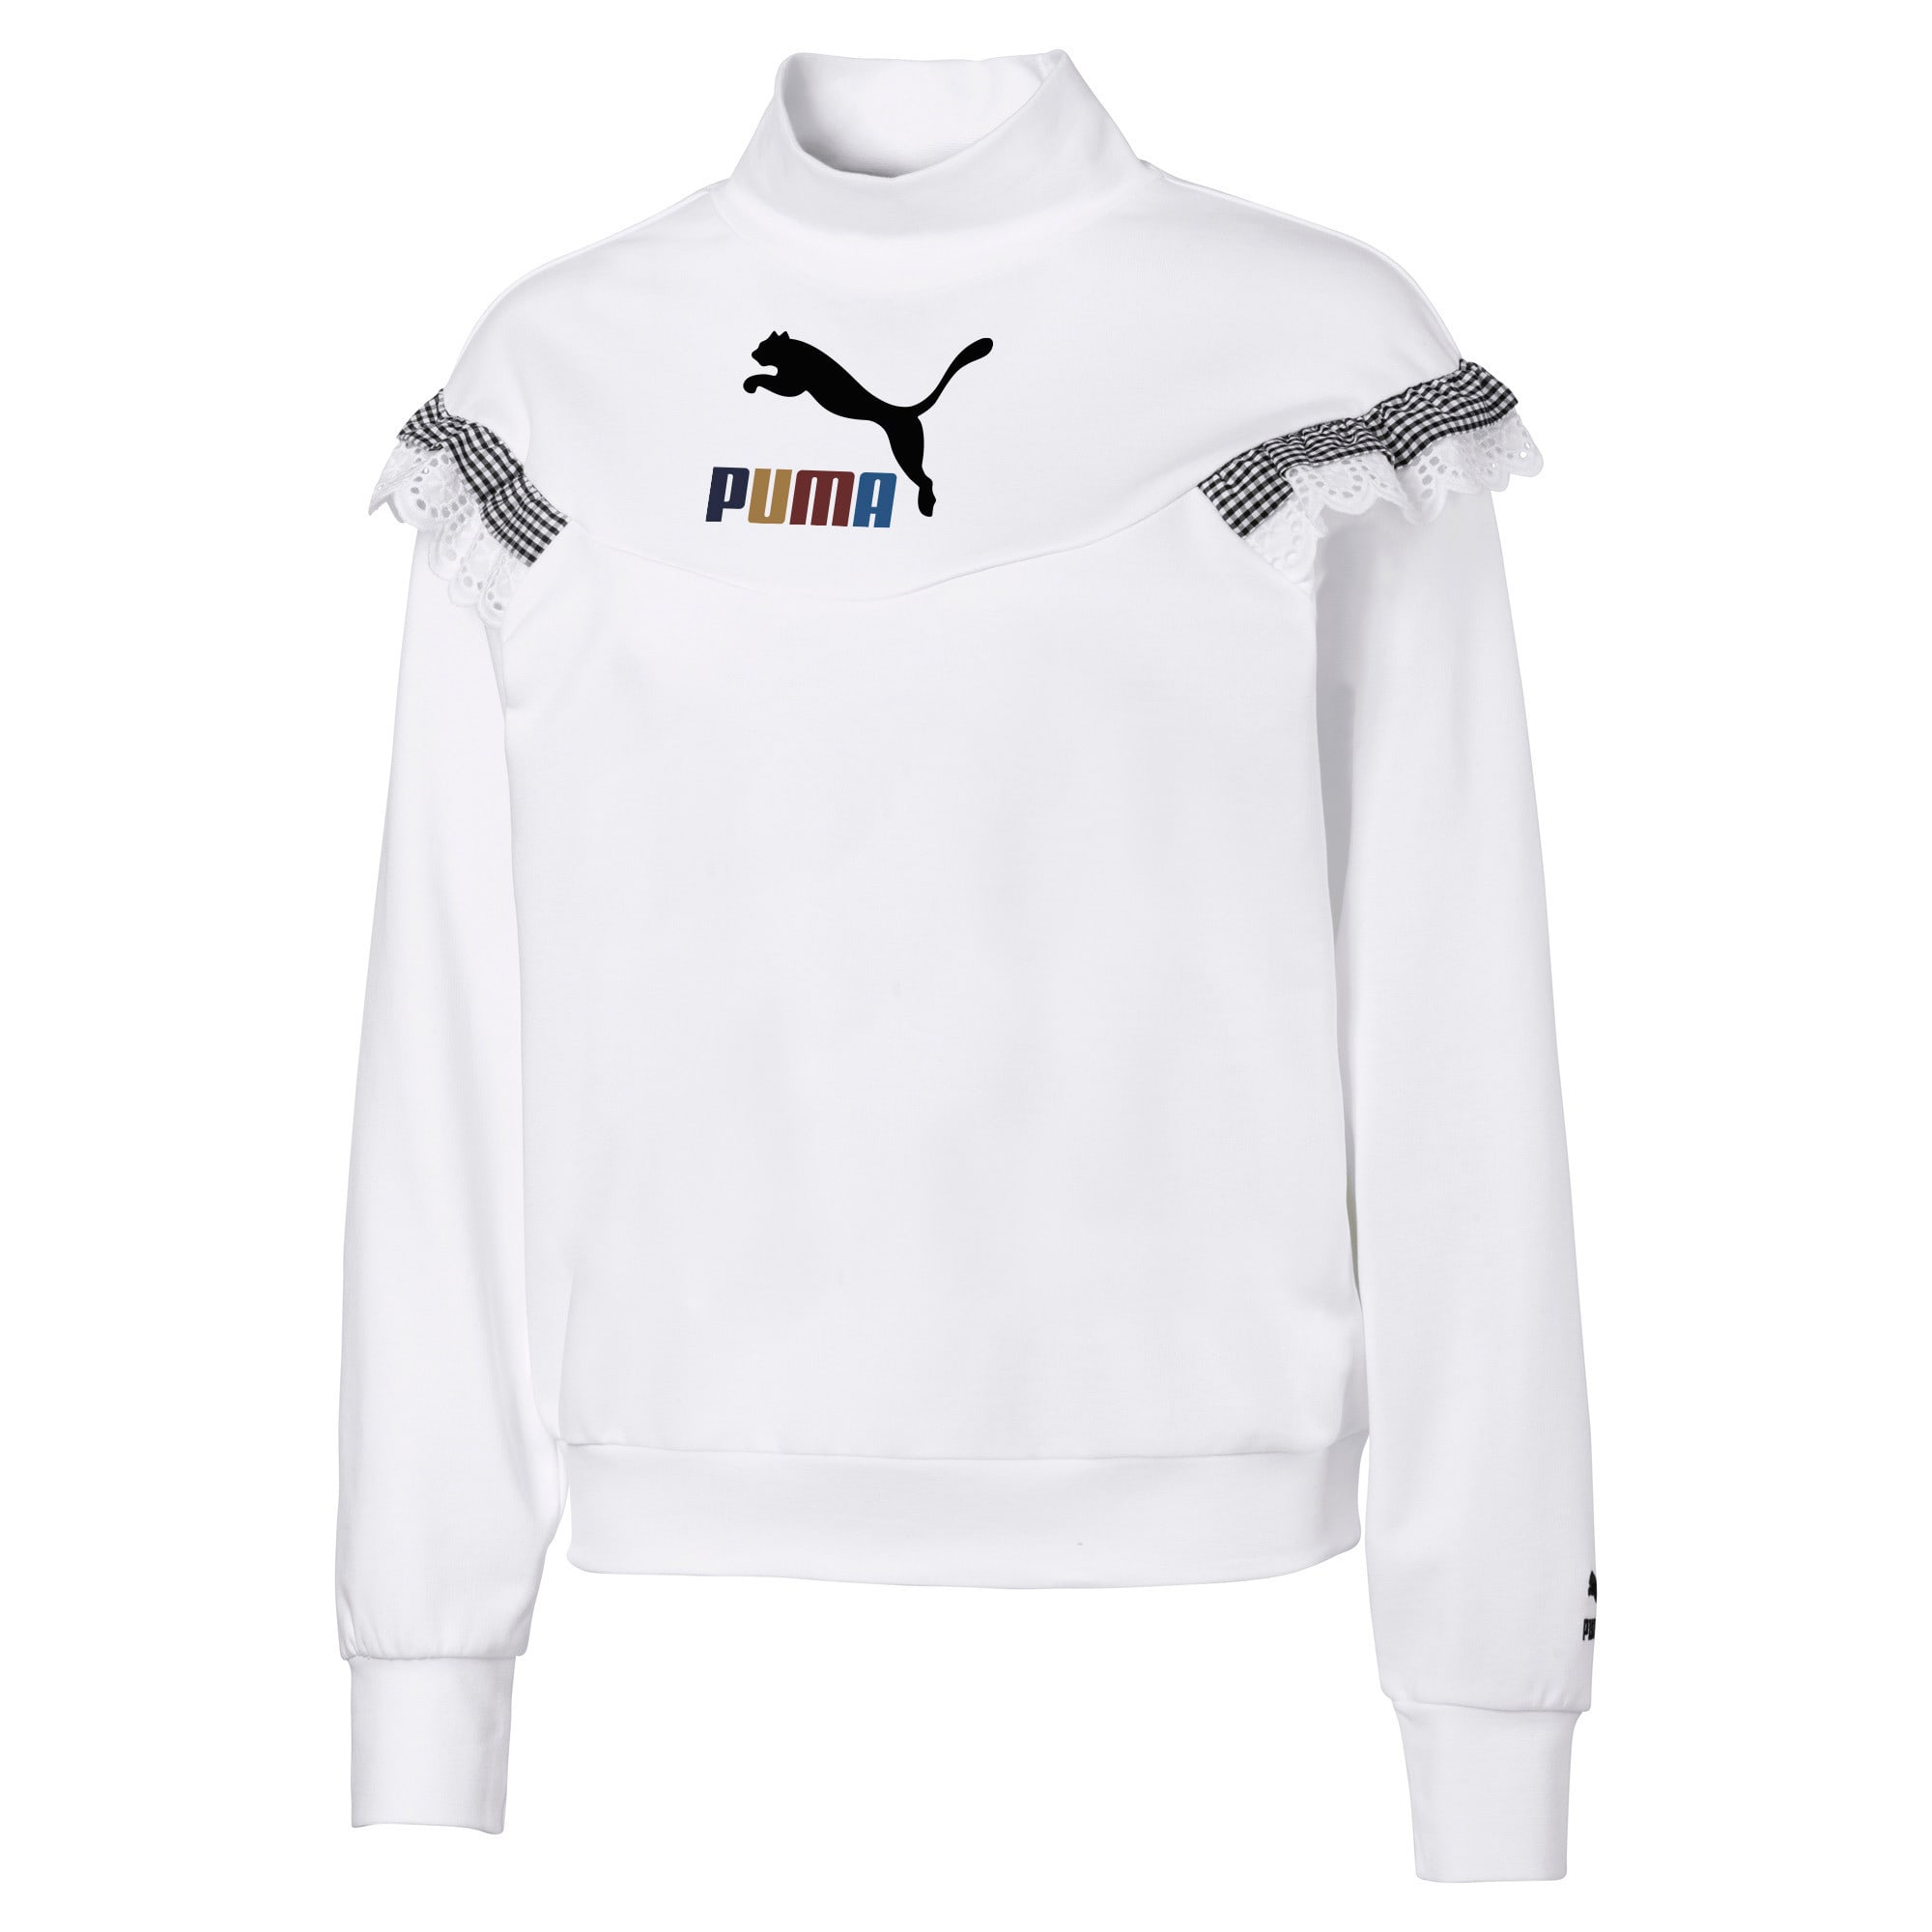 Thumbnail 1 of PUMA x TYAKASHA Women's Turtleneck Sweater, Puma White, medium